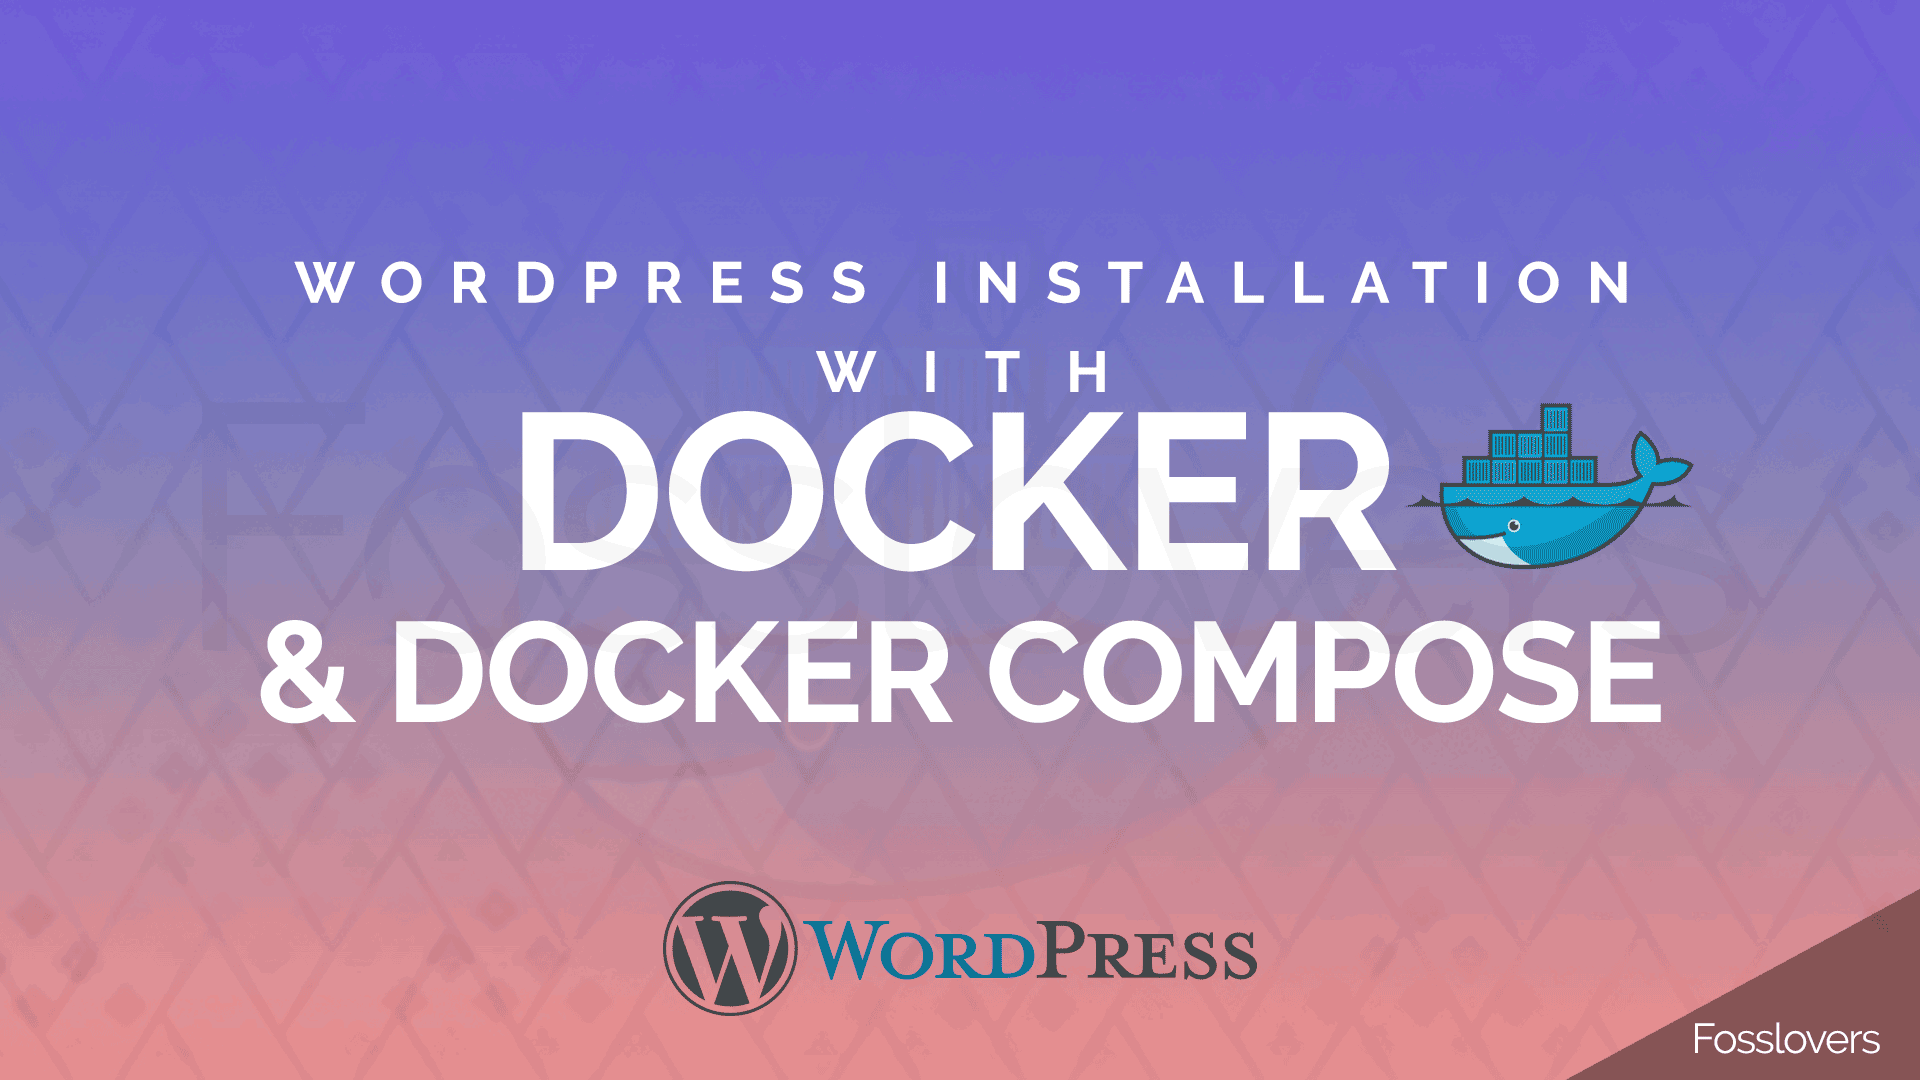 WordPress installation with Docker and Docker Compose Fosslovers